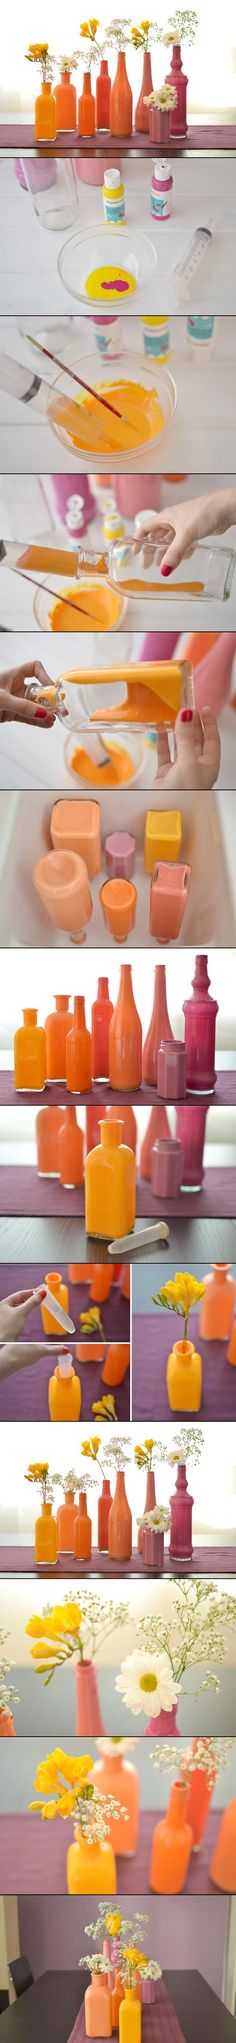 Painted bottles.